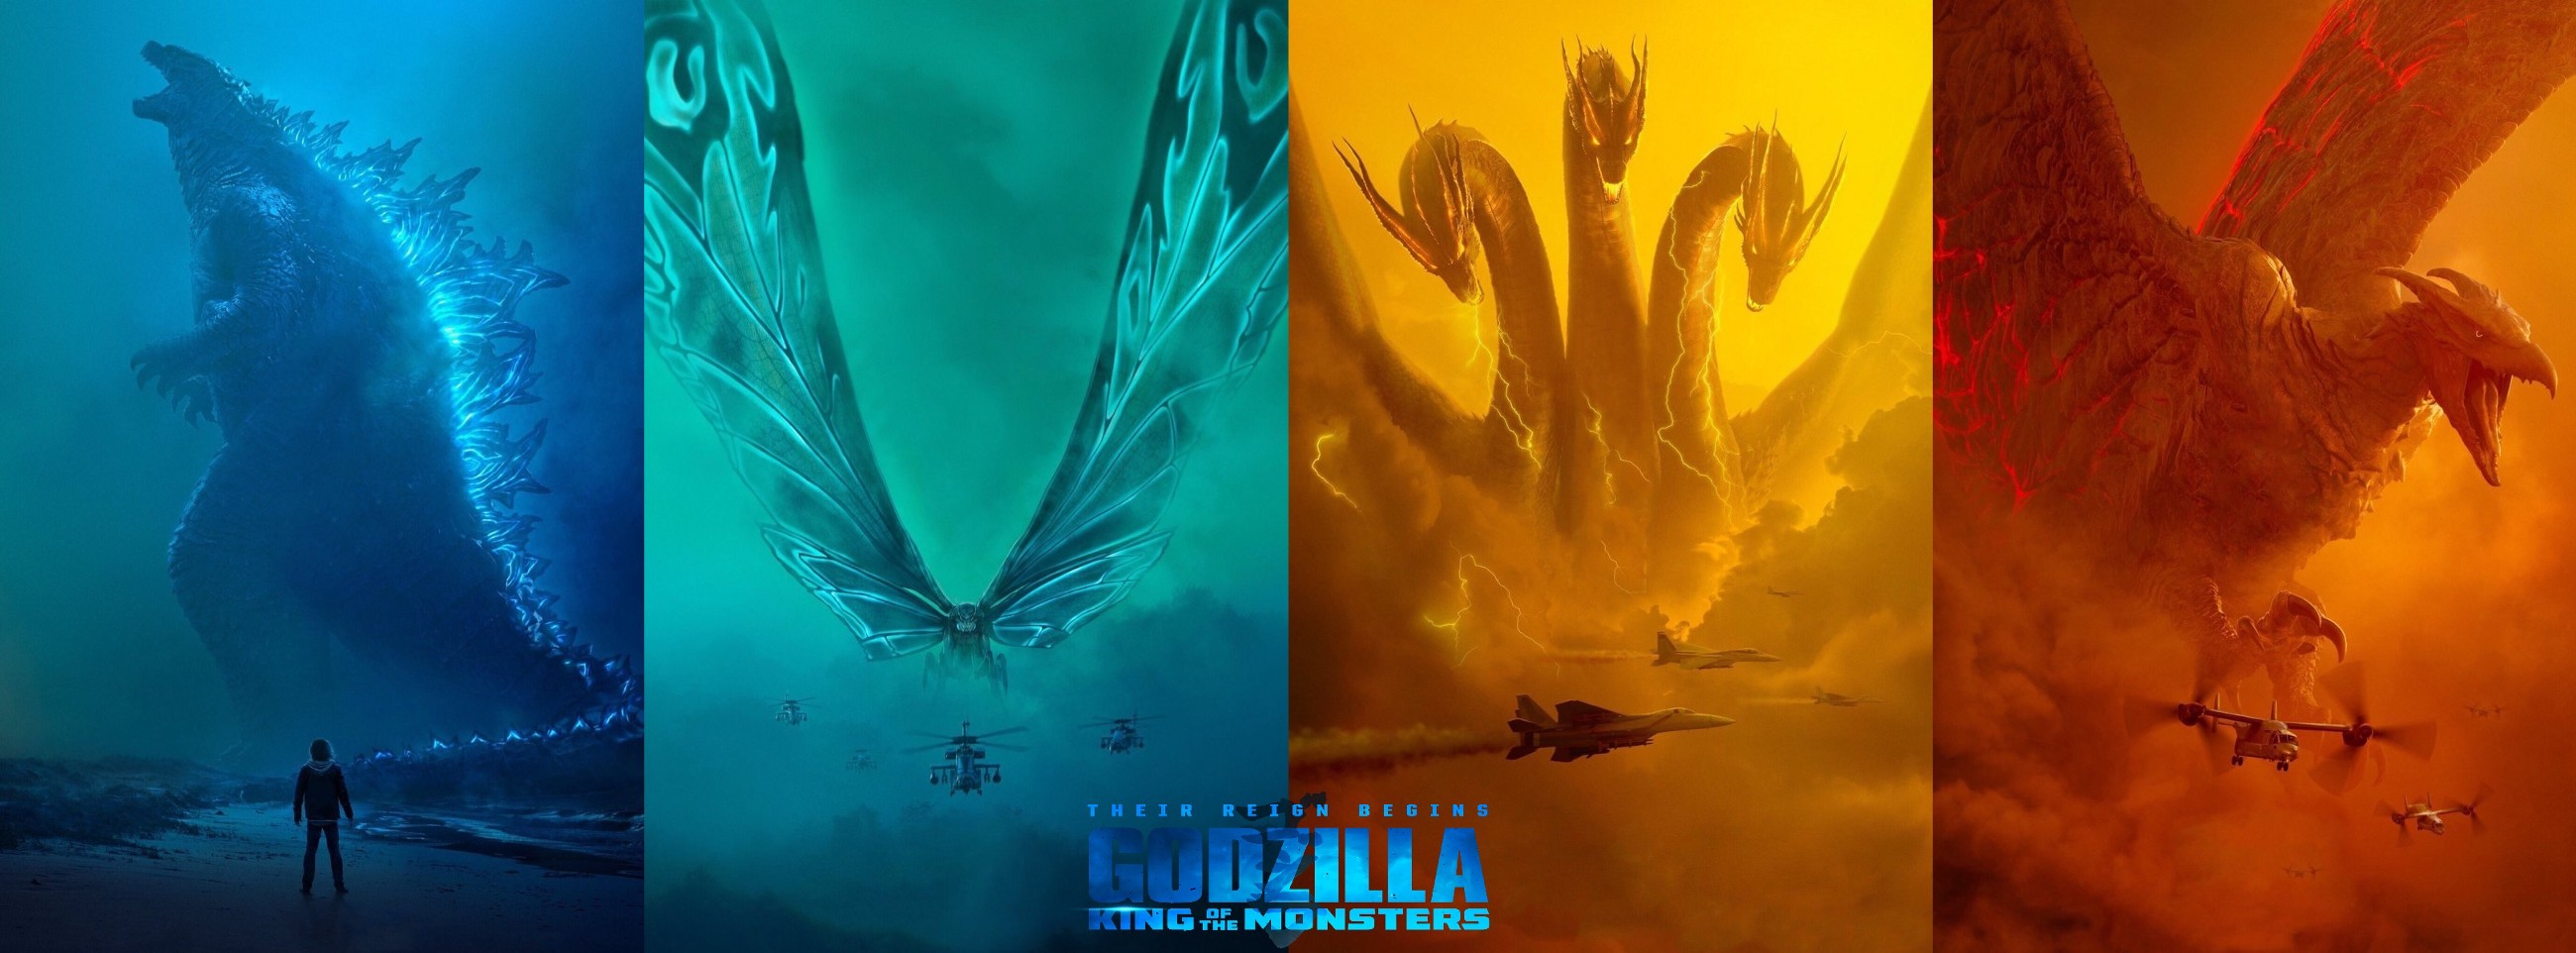 Godzilla: King of the Monsters.